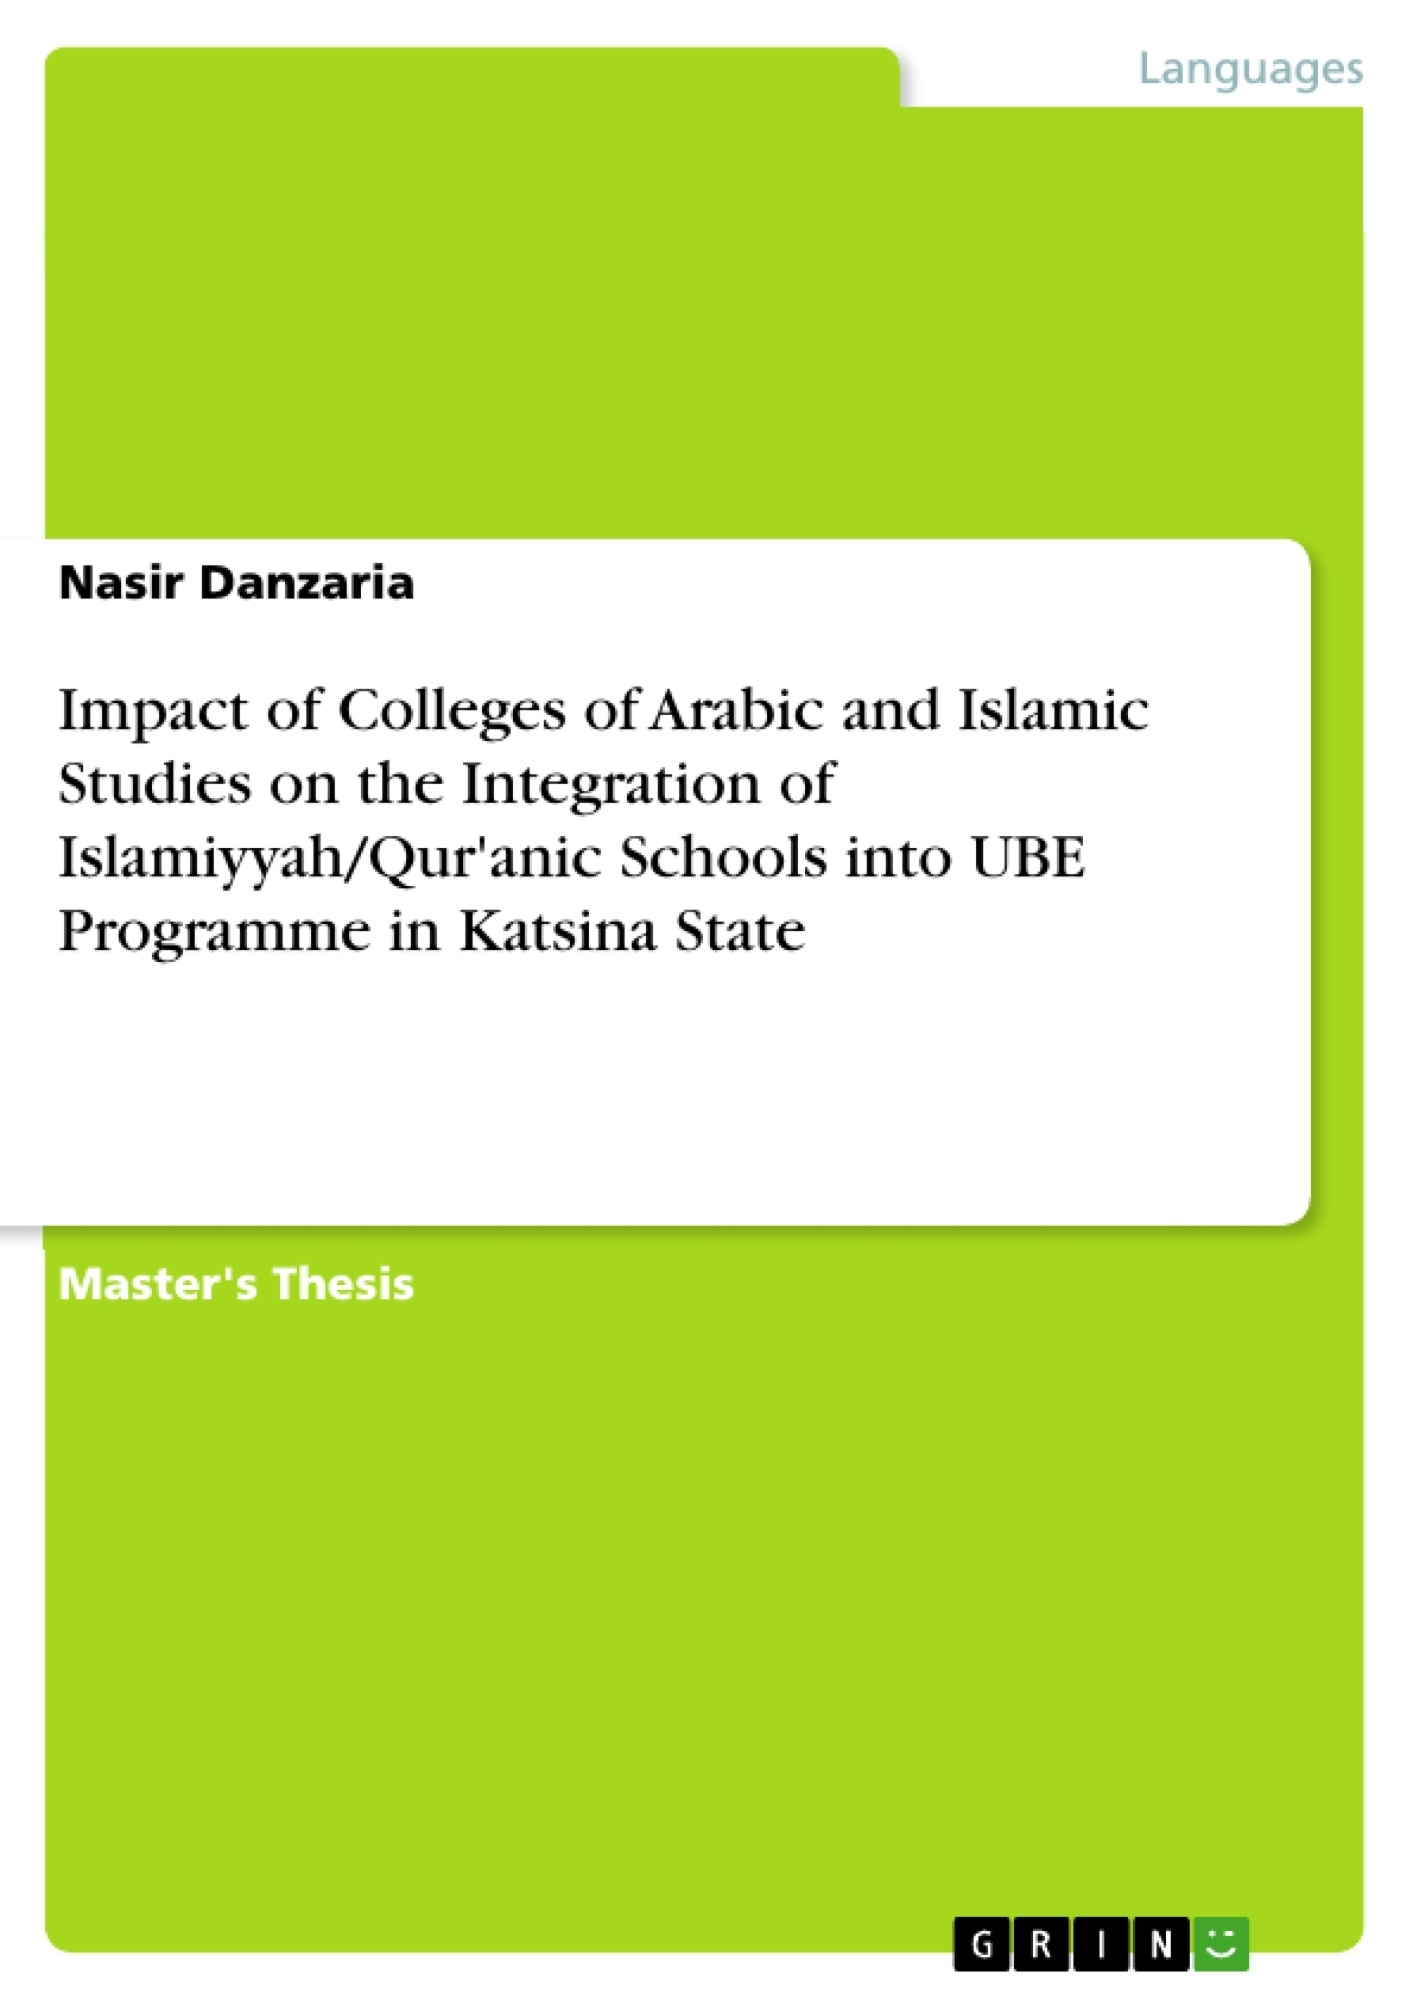 GRIN - Impact of Colleges of Arabic and Islamic Studies on the Integration  of Islamiyyah/Qur'anic Schools into UBE Programme in Katsina State